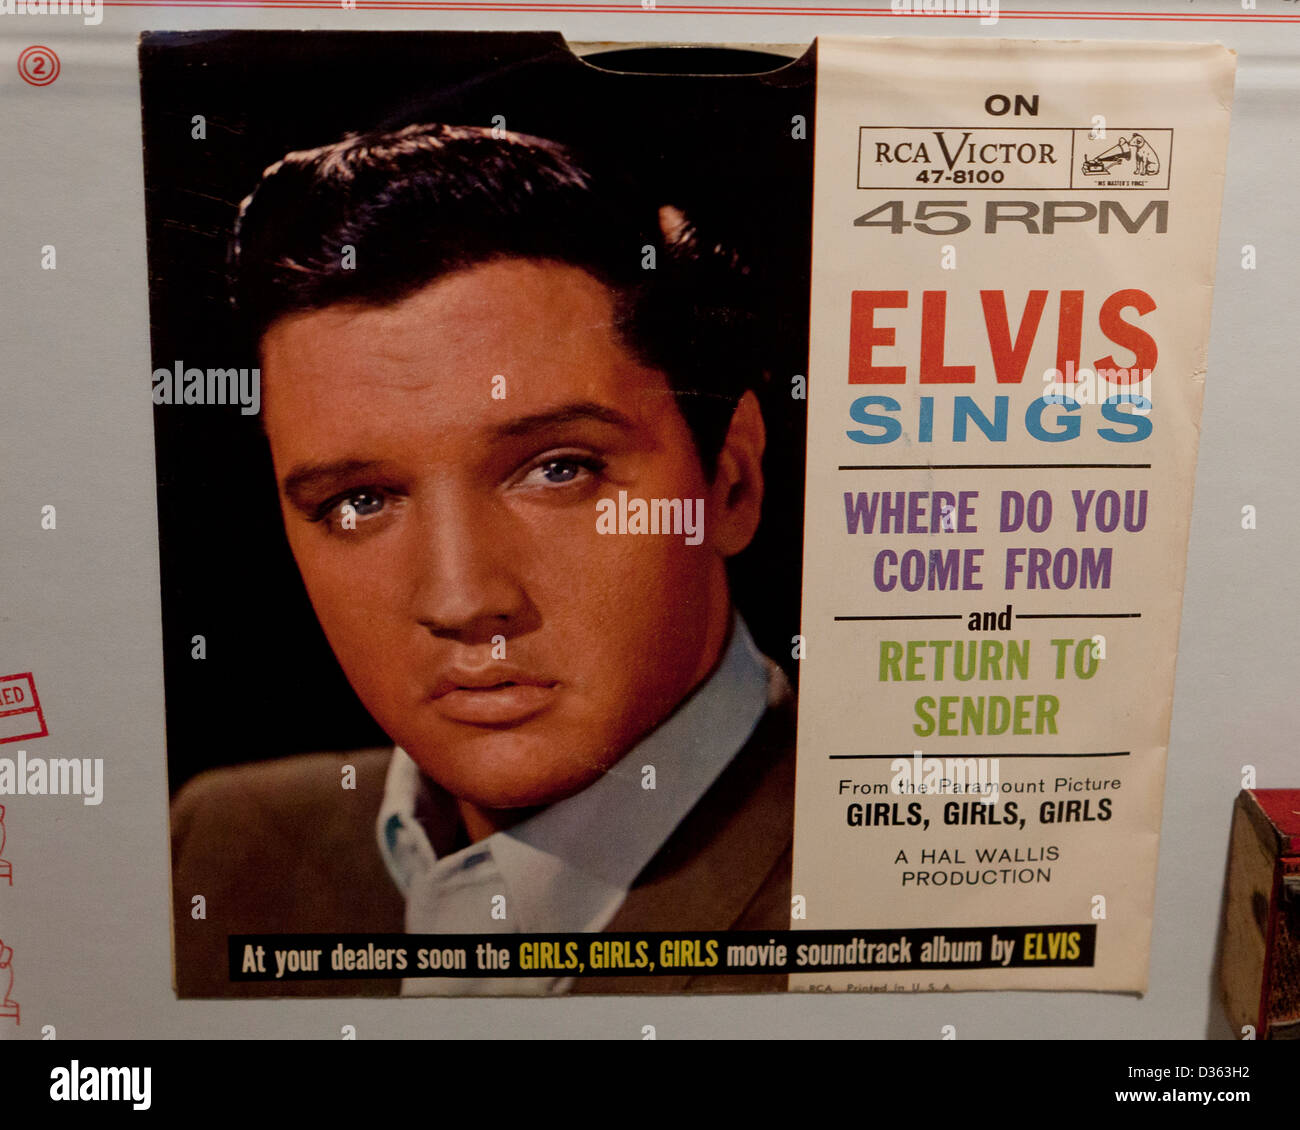 Elvis single, 45 RPM record - Where do you come from, Return to sender - Stock Image